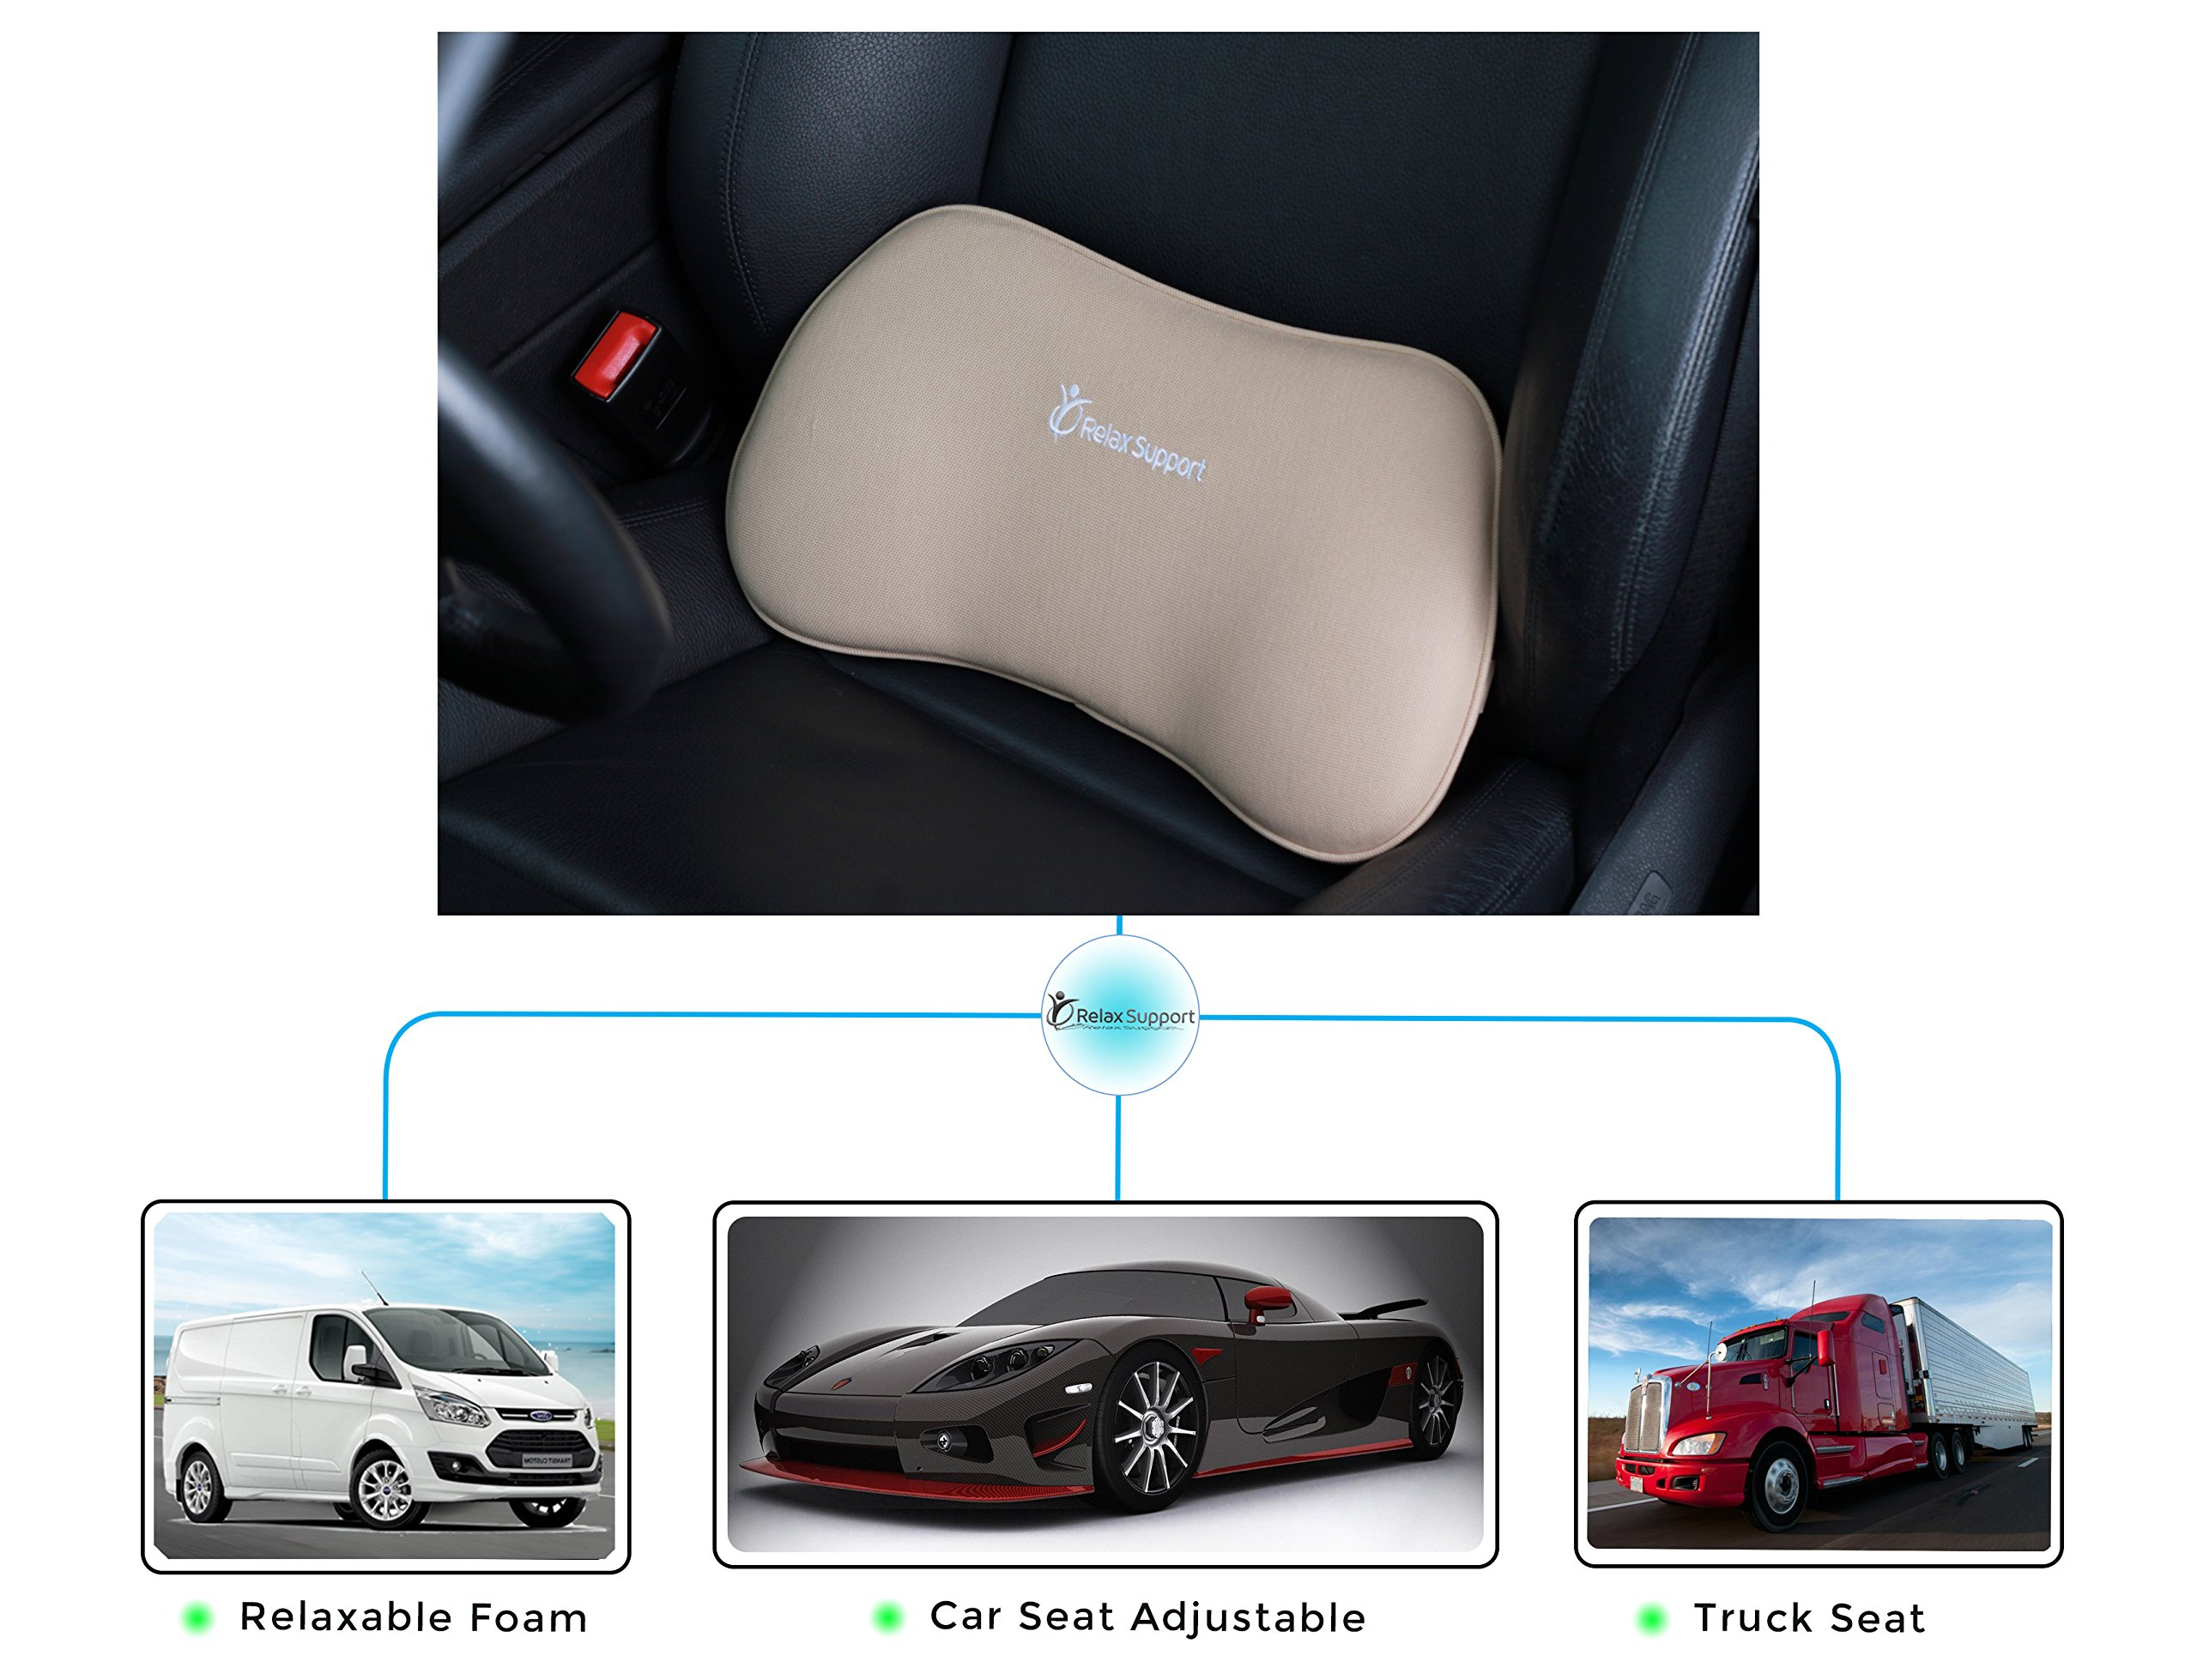 Lumbar Pillow RS1 with Firmer Memory Foam Provide Back Support Pain Relief and it is Extreme Comfort Design Cushion Best for your Lower Support in Car Seat Office Chair Sofa Travel Backrest by Relax Support (Image #4)